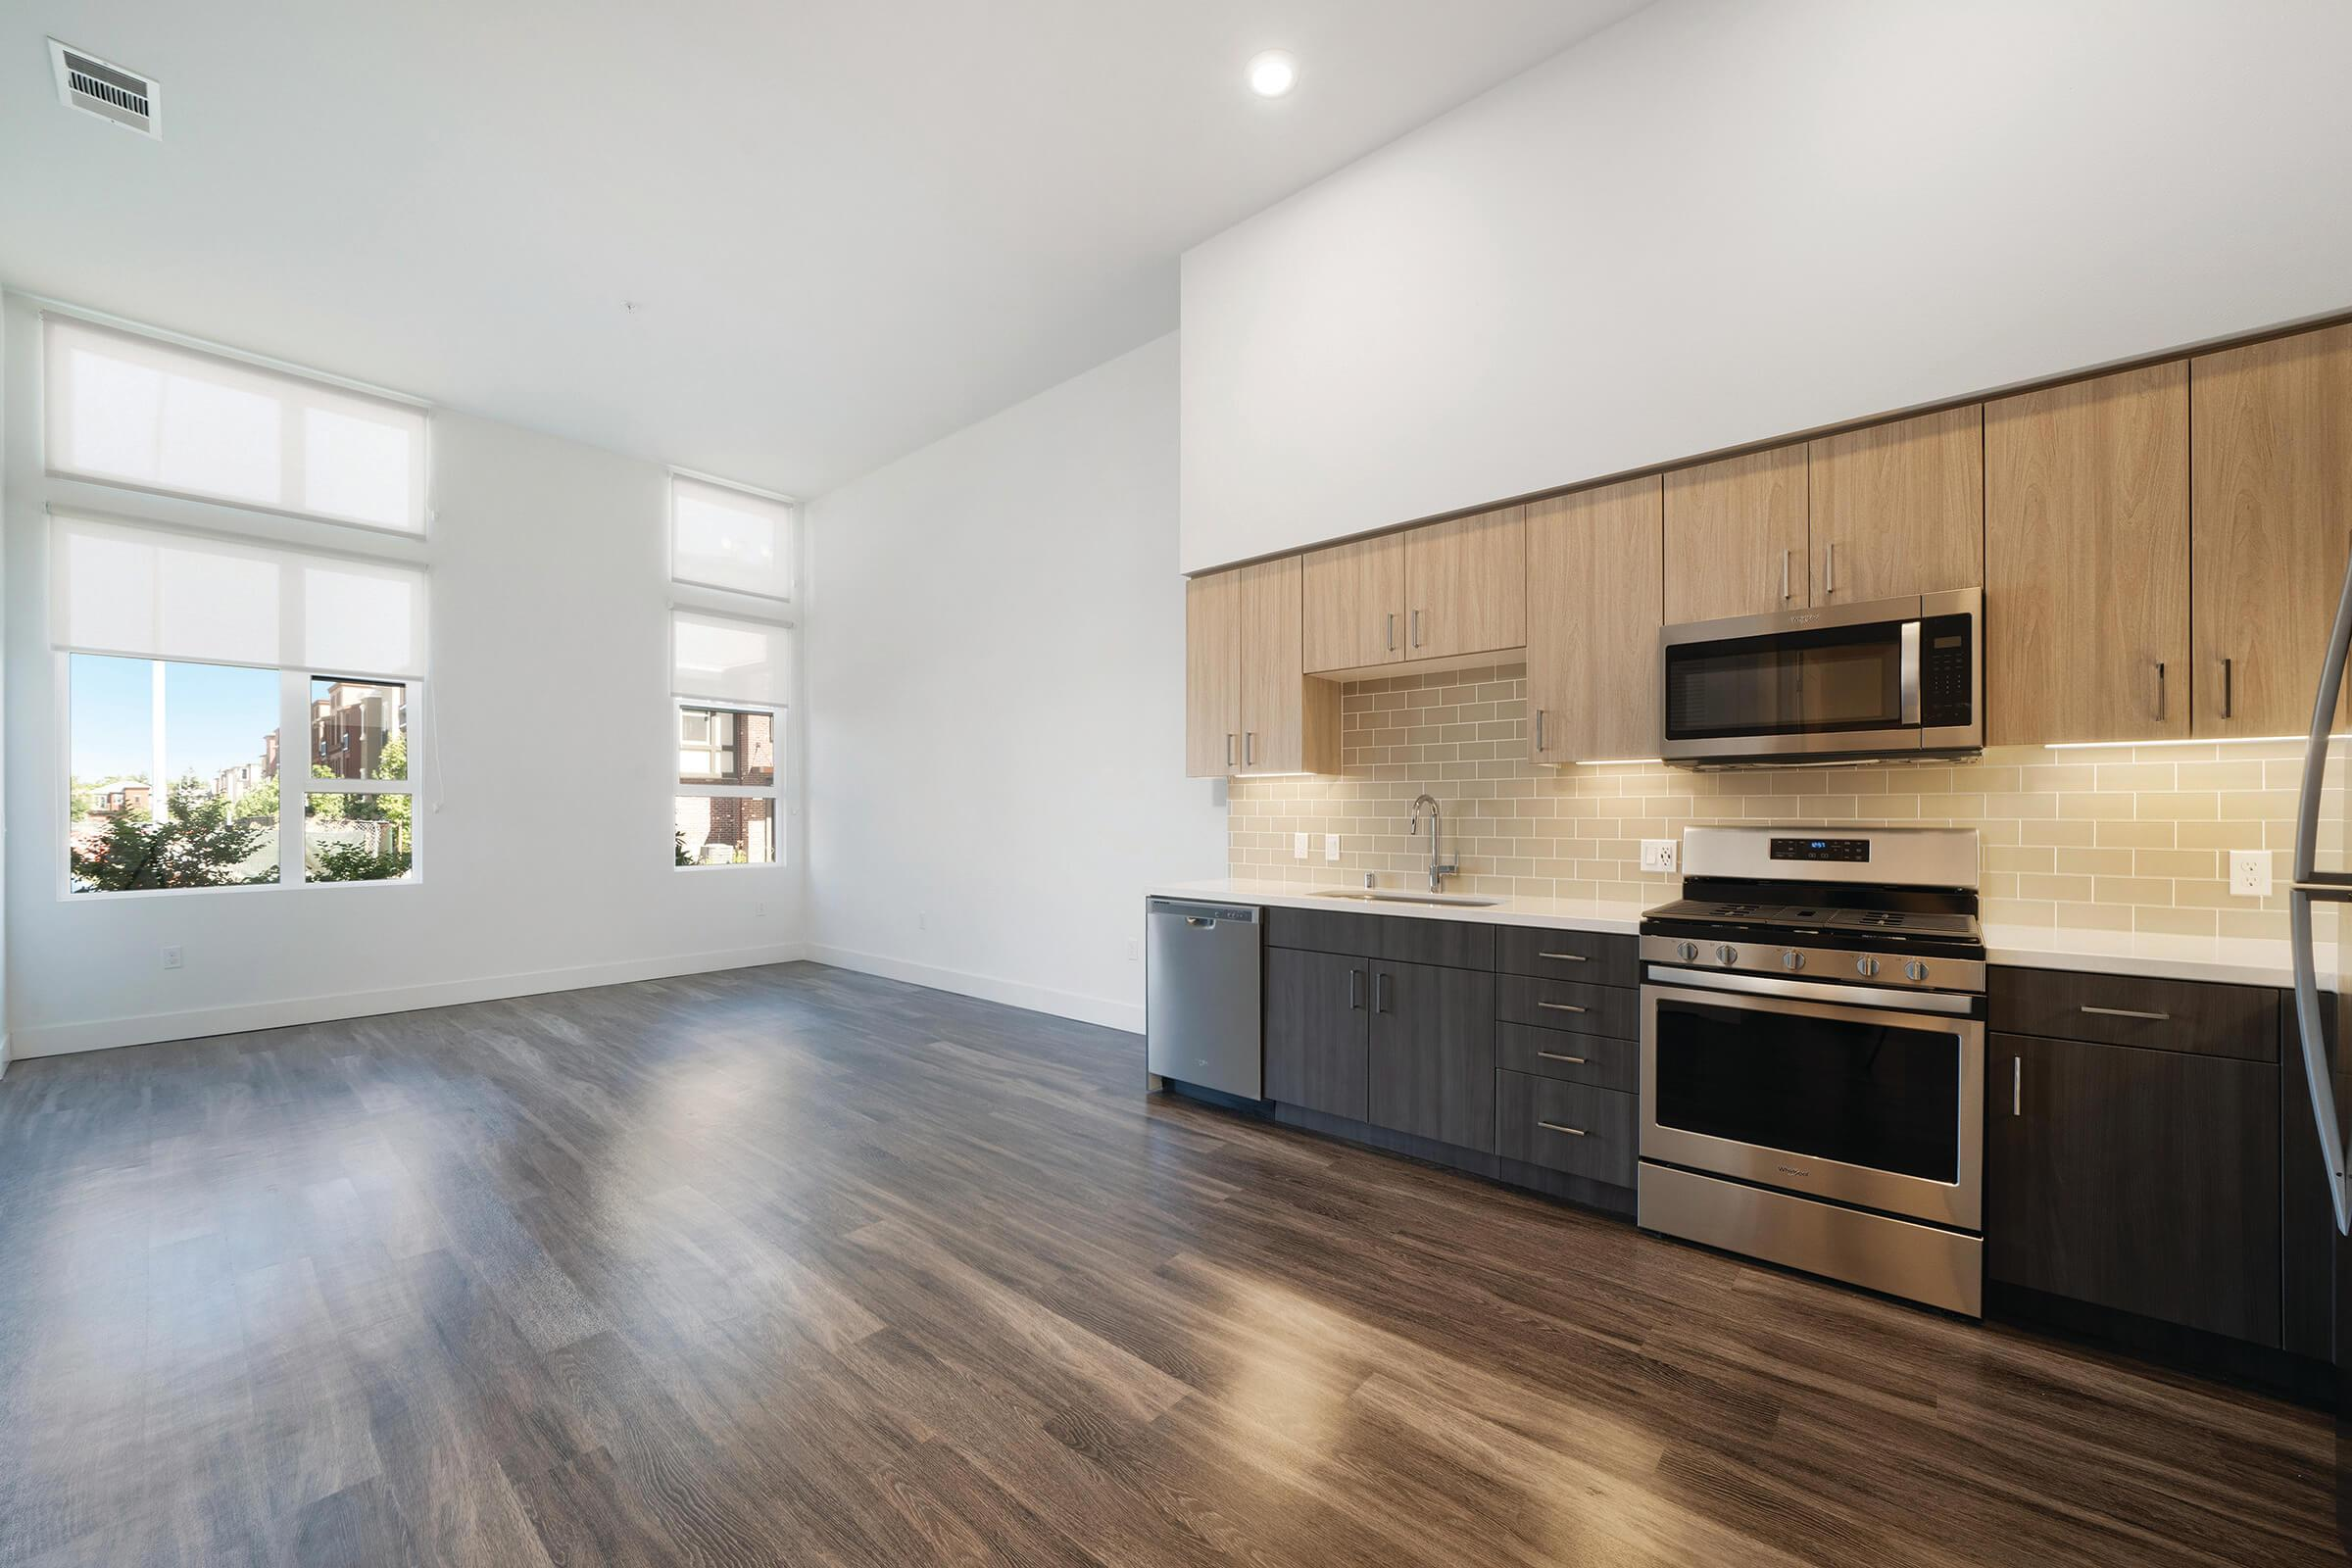 Unfurnished kitchen and dining room